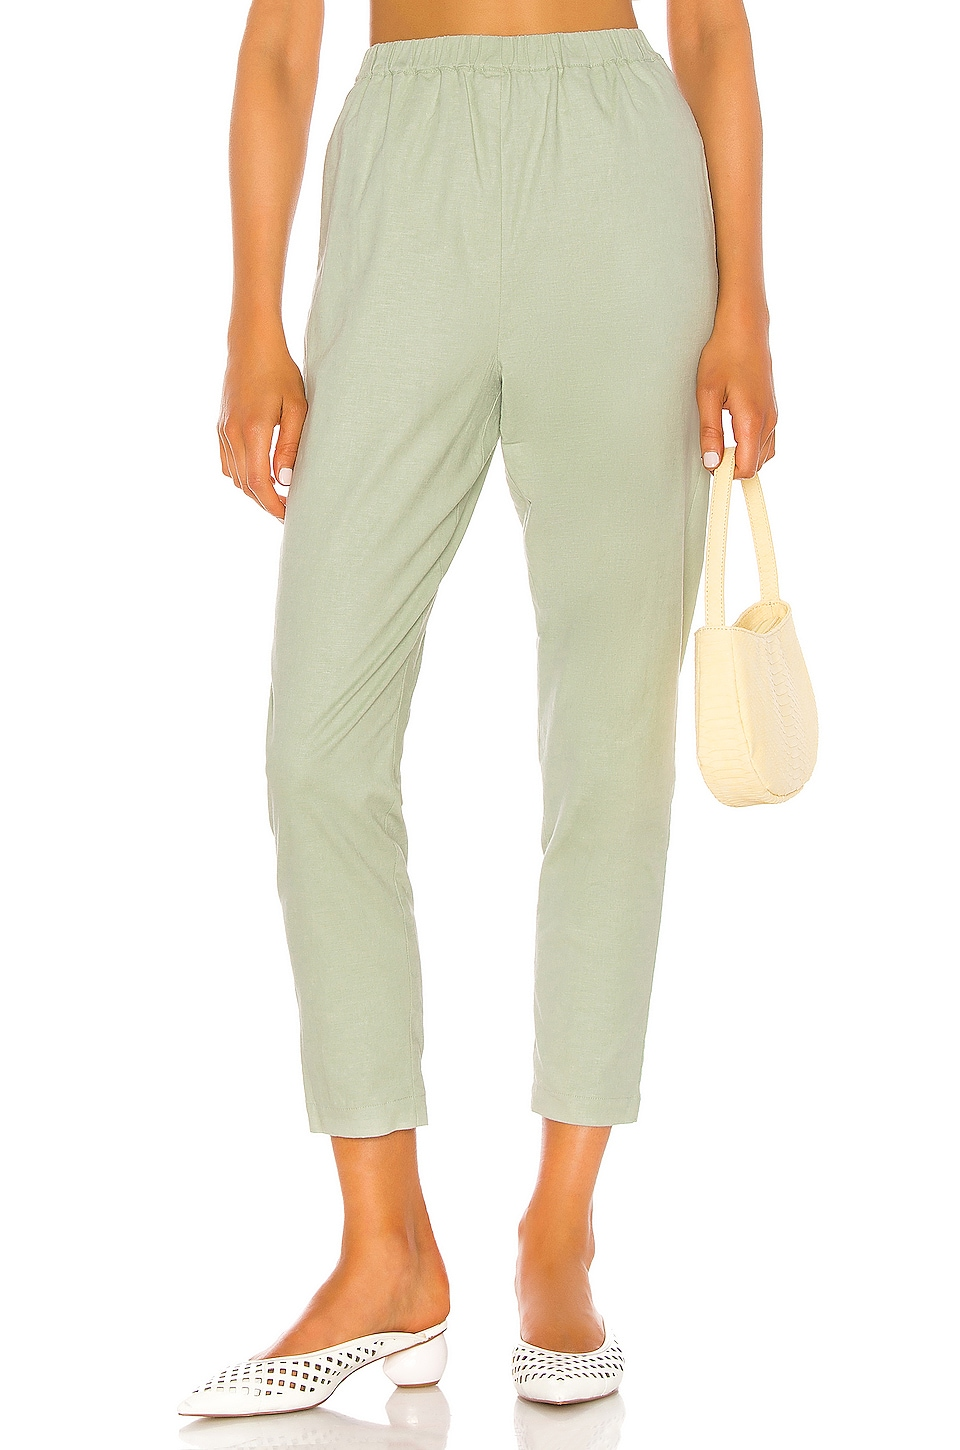 Song of Style Pico Pant in Sage Green